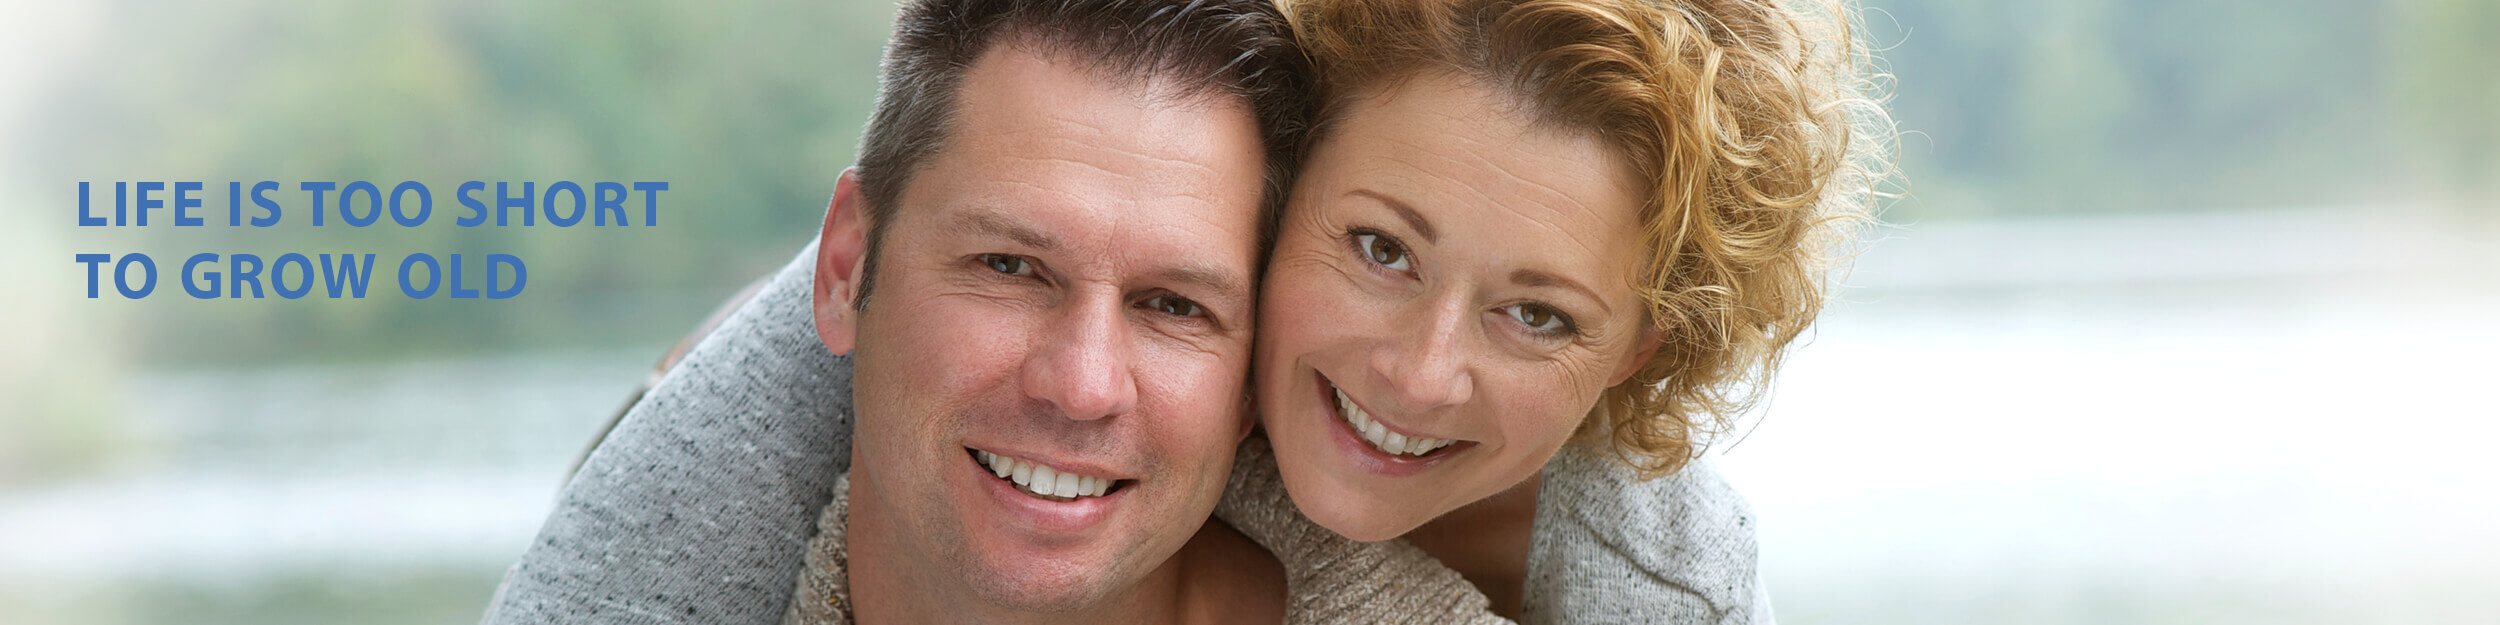 Middle aged woman and man smiling